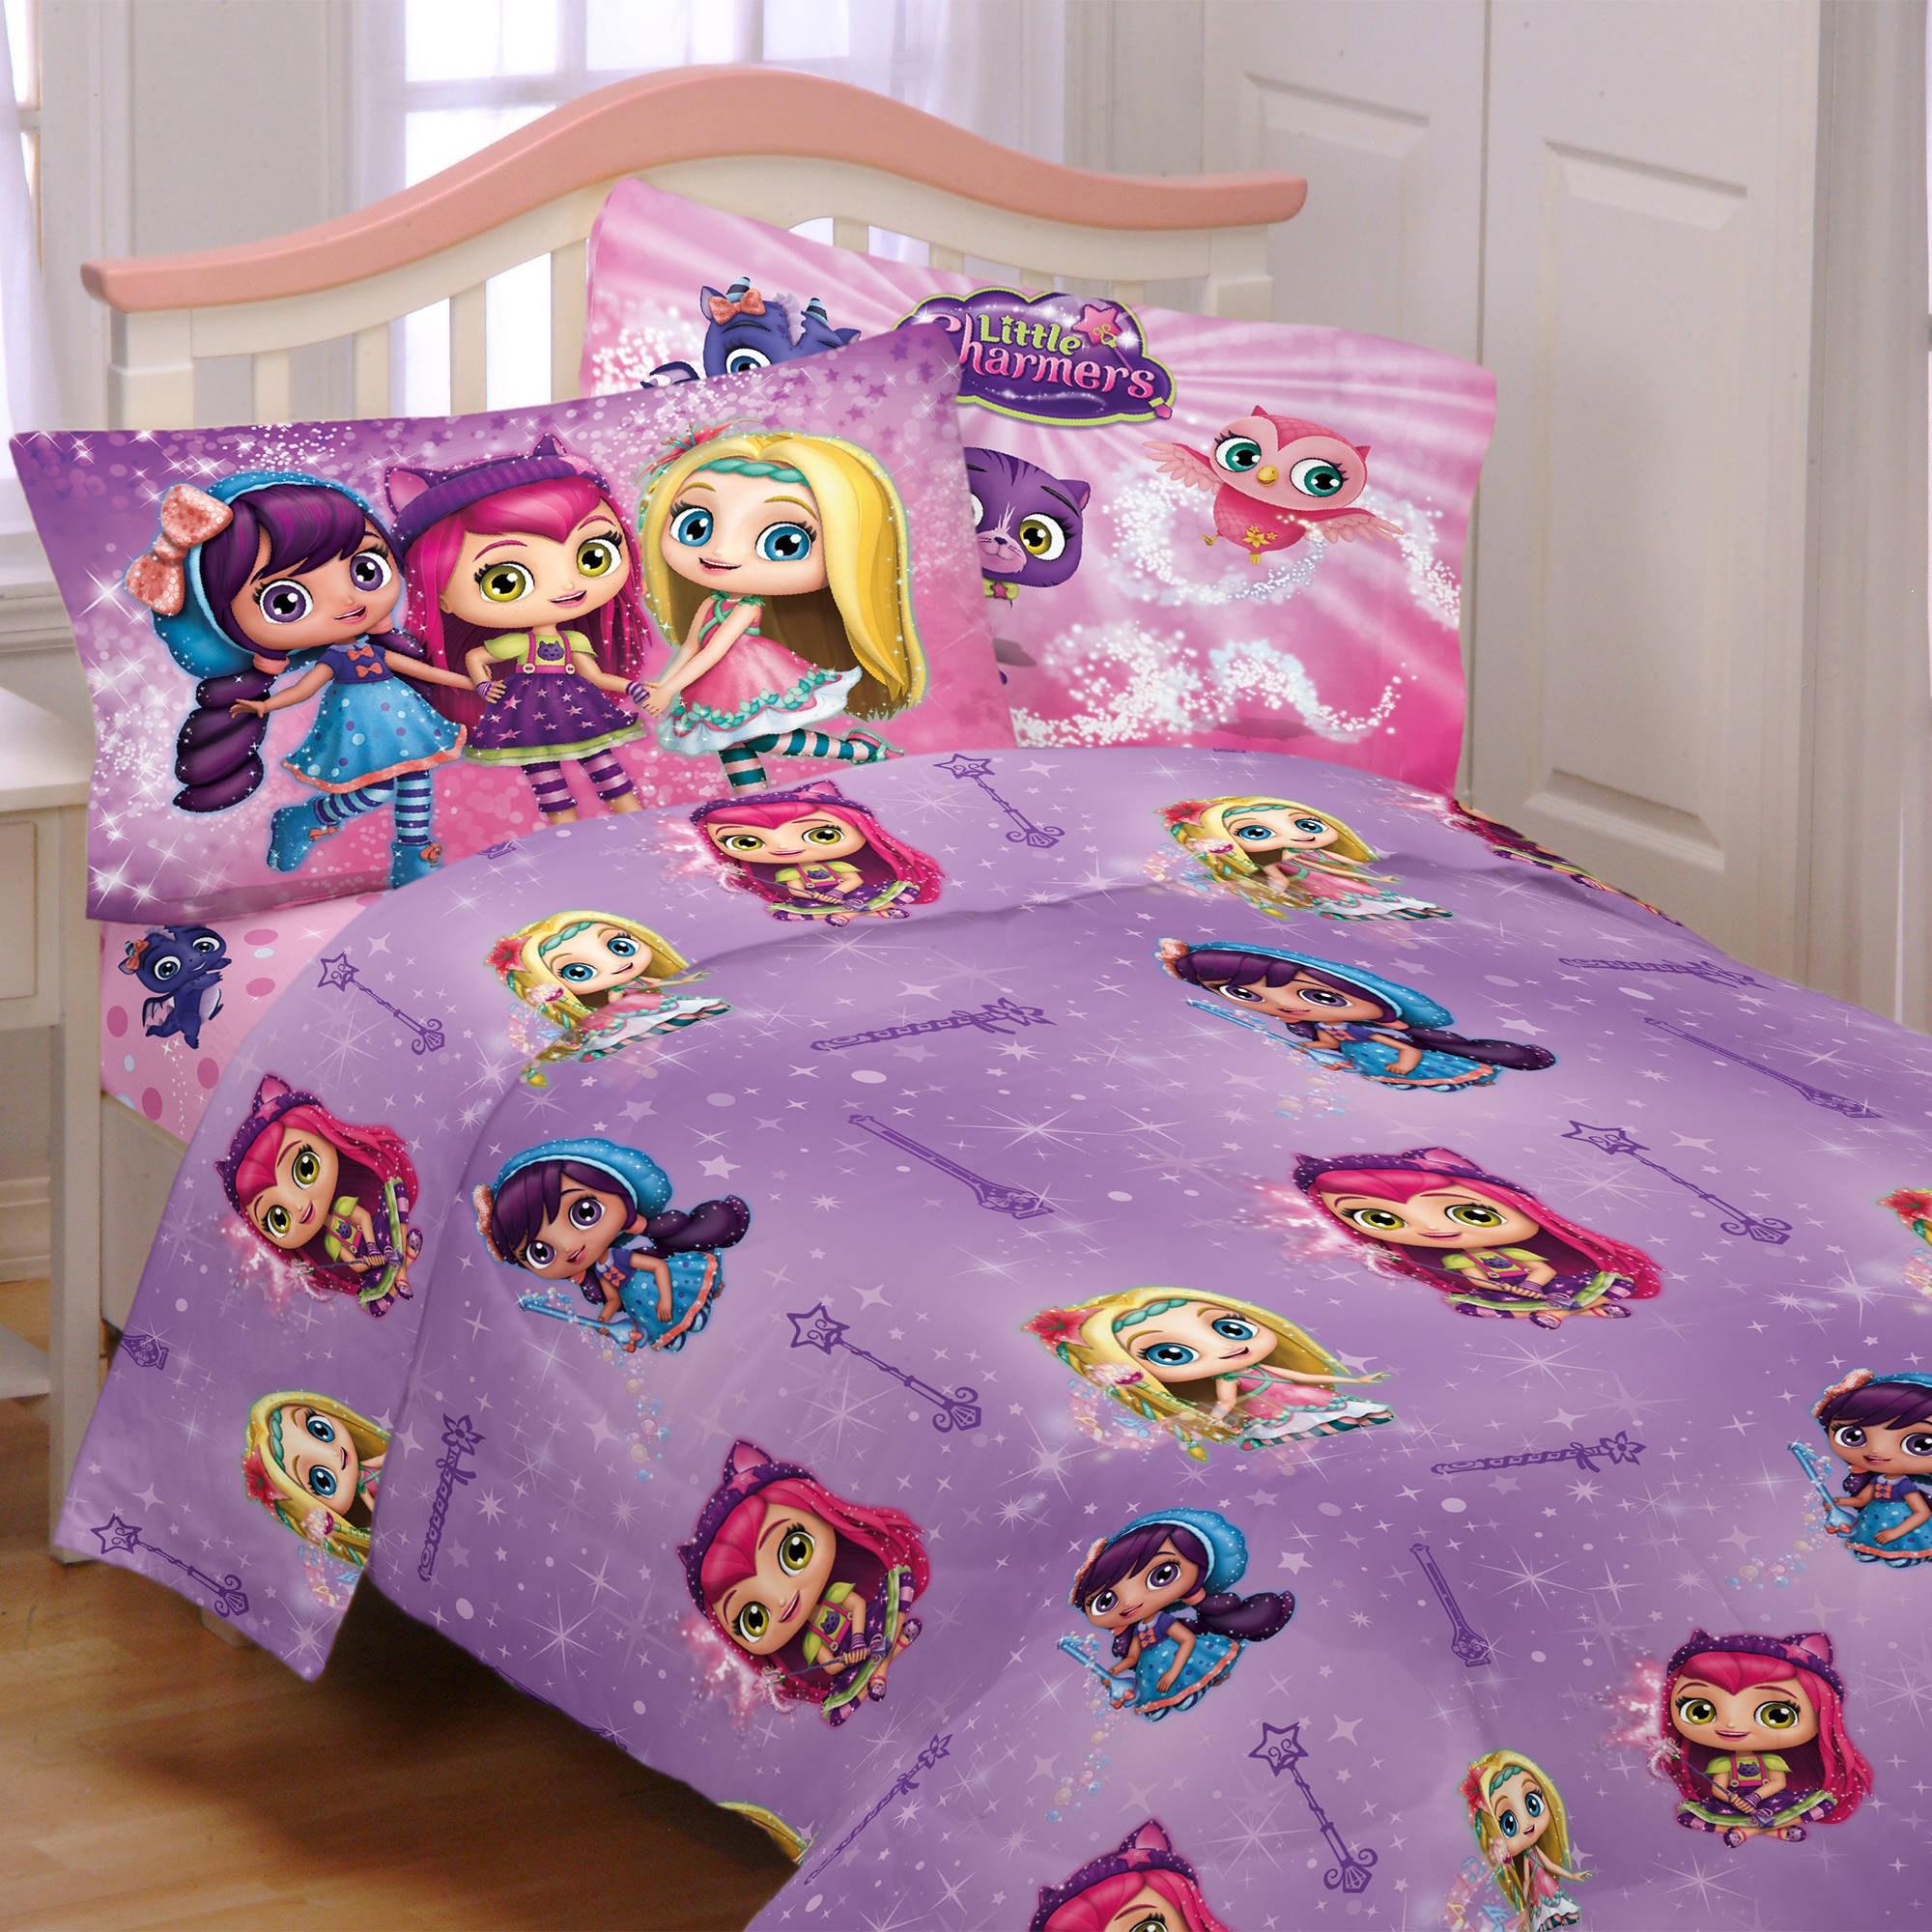 Franco Little Charmers Charm - tastic Twin Sheet Bedding Set